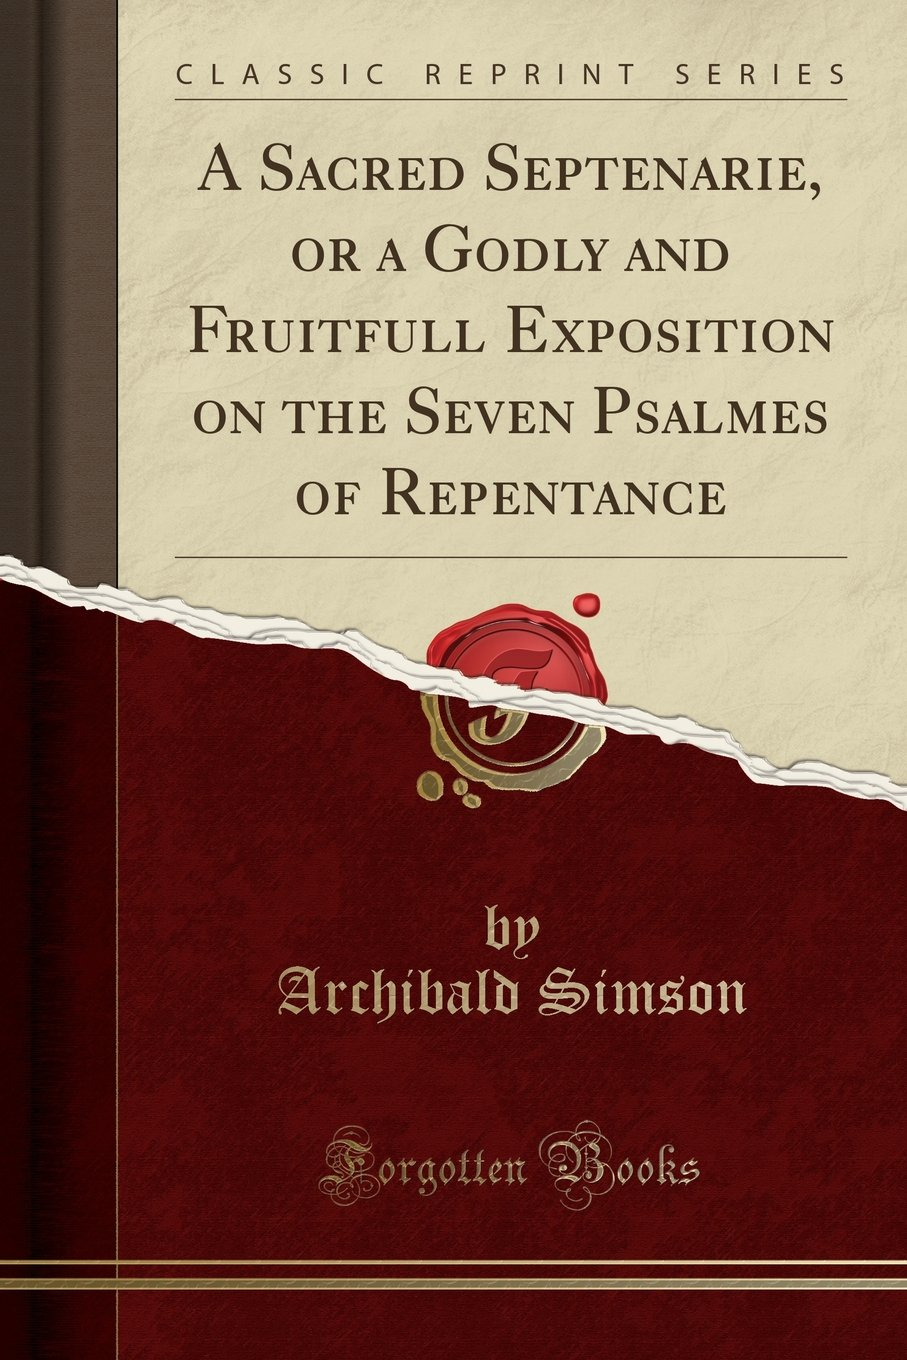 Download A Sacred Septenarie, or a Godly and Fruitfull Exposition on the Seven Psalmes of Repentance (Classic Reprint) pdf